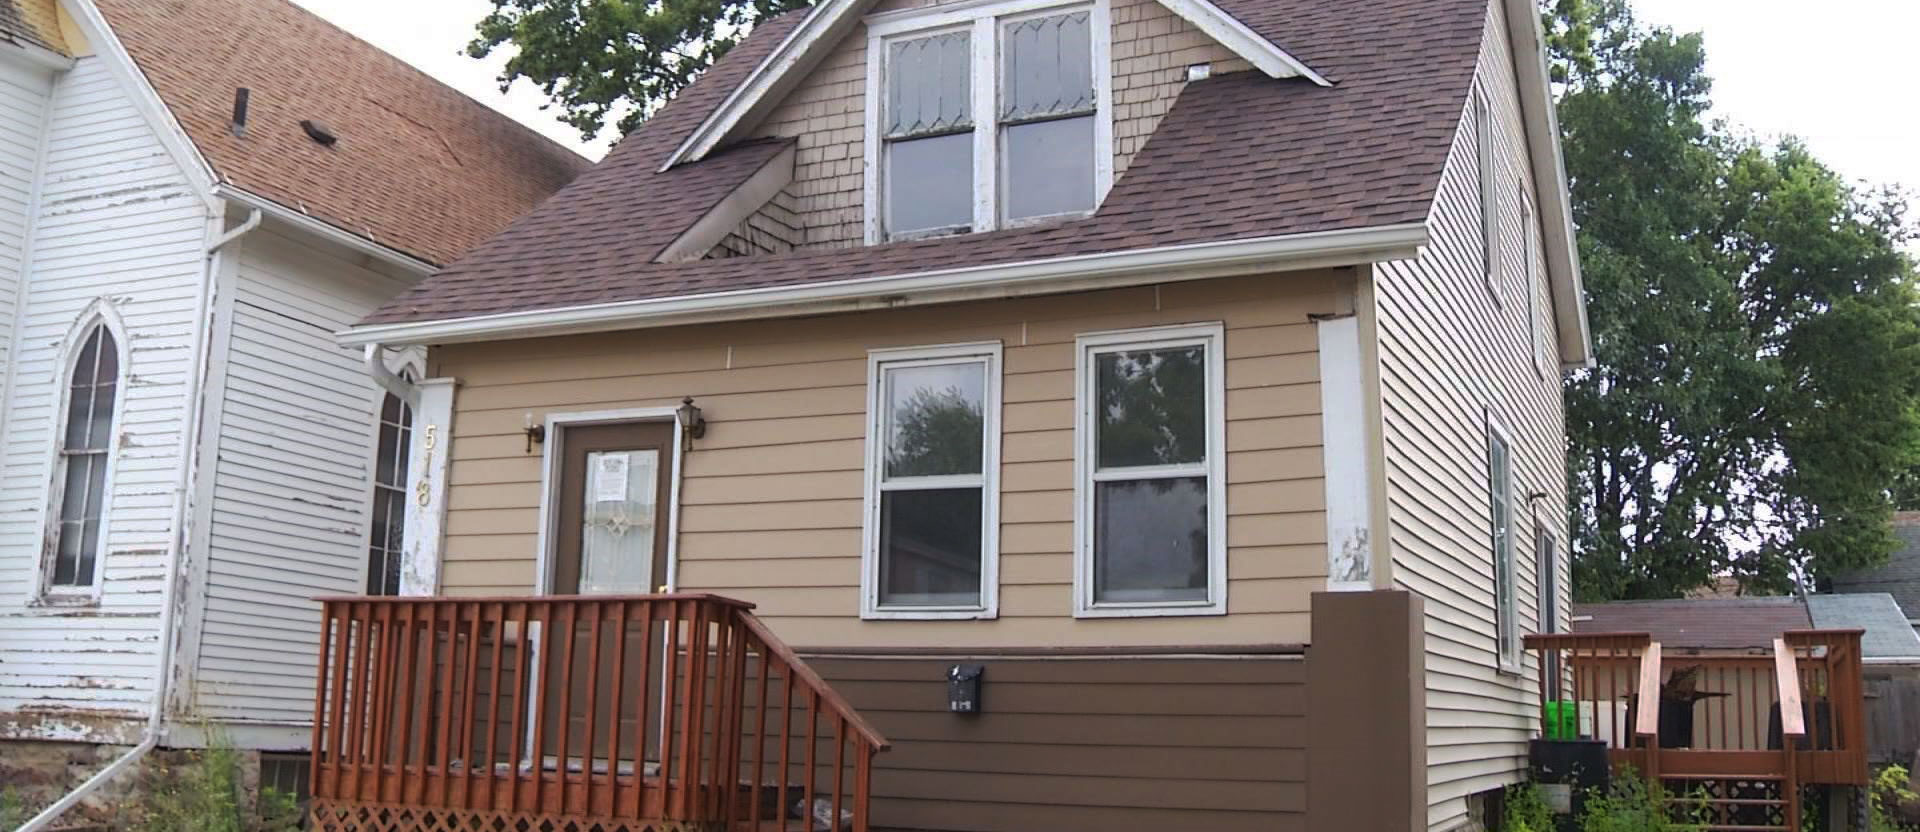 Sioux falls best city to flip houses for Best way to flip houses